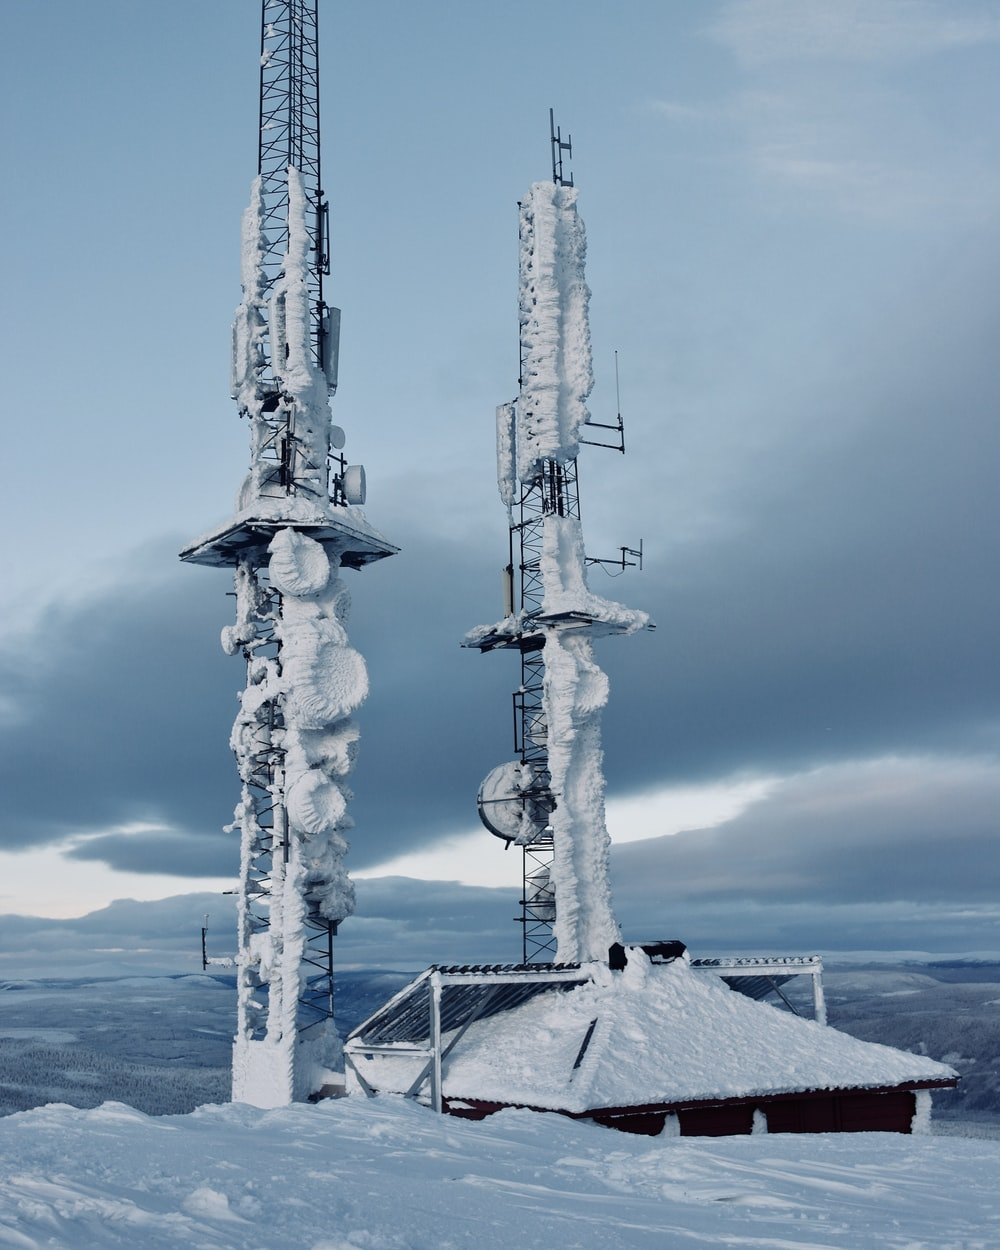 snow covered tower during daytime